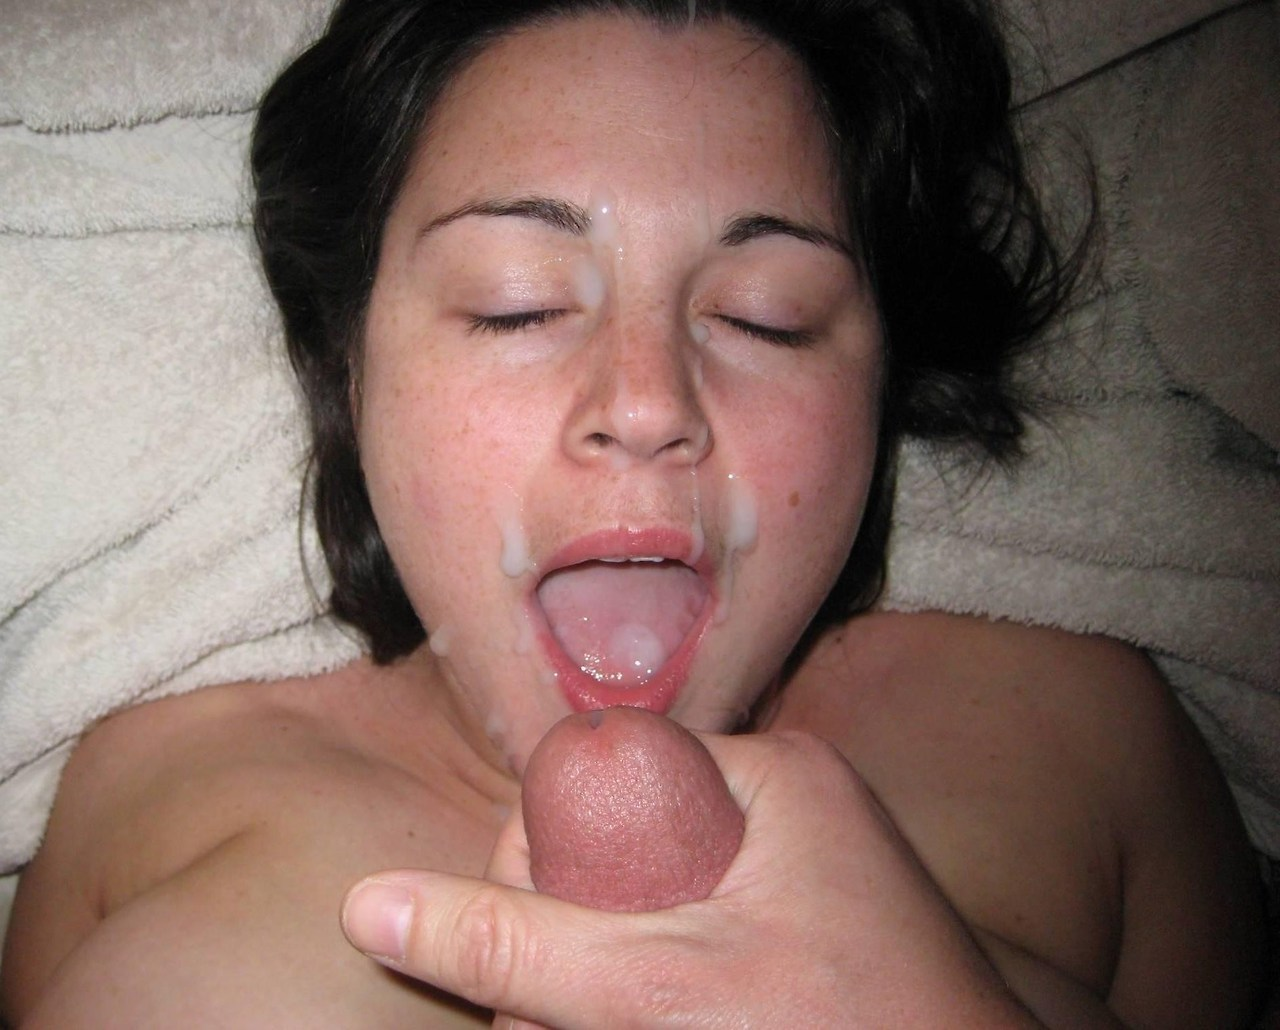 ejaculation Slut mom freckles